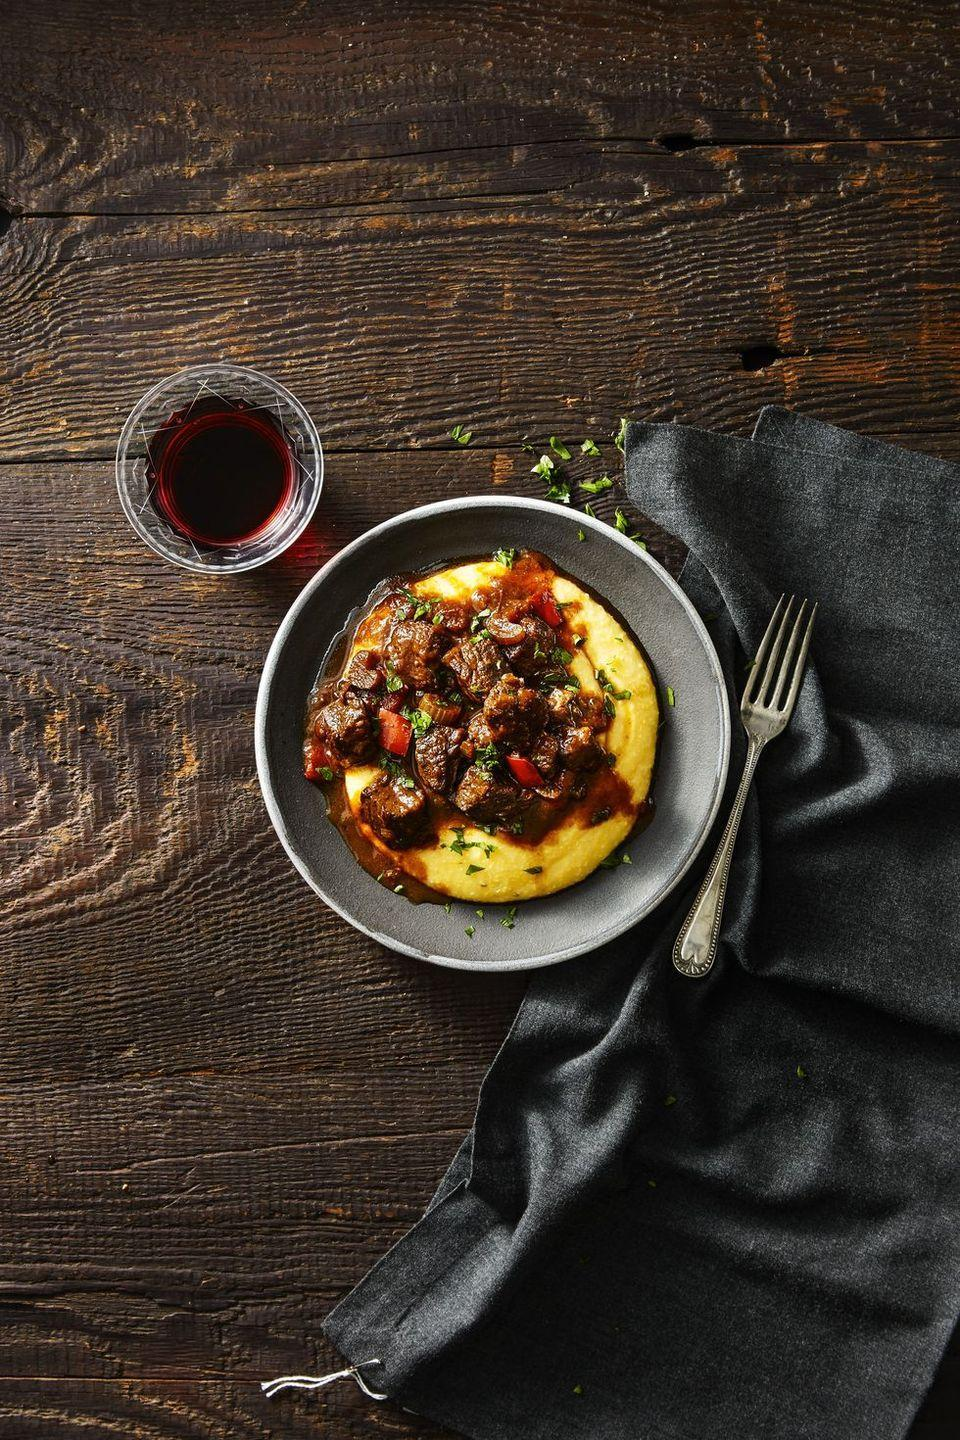 """<p>While it may be spring in New Orleans during Mardi Gras, many parts of the country will still be stuck in winter. Warm up with this cozy, comforting dish.</p><p><em><a href=""""https://www.goodhousekeeping.com/food-recipes/a42354/cajun-beef-grits-recipe/"""" rel=""""nofollow noopener"""" target=""""_blank"""" data-ylk=""""slk:Get the recipe for New Orleans Cajun Beef and Grits »"""" class=""""link rapid-noclick-resp"""">Get the recipe for New Orleans Cajun Beef and Grits »</a></em></p><p><strong>RELATED: </strong><a href=""""https://www.goodhousekeeping.com/food-recipes/healthy/g978/comfort-food/"""" rel=""""nofollow noopener"""" target=""""_blank"""" data-ylk=""""slk:75 Comfort Food Dishes That Are Perfect for Any Time of Year"""" class=""""link rapid-noclick-resp"""">75 Comfort Food Dishes That Are Perfect for Any Time of Year</a><br></p>"""